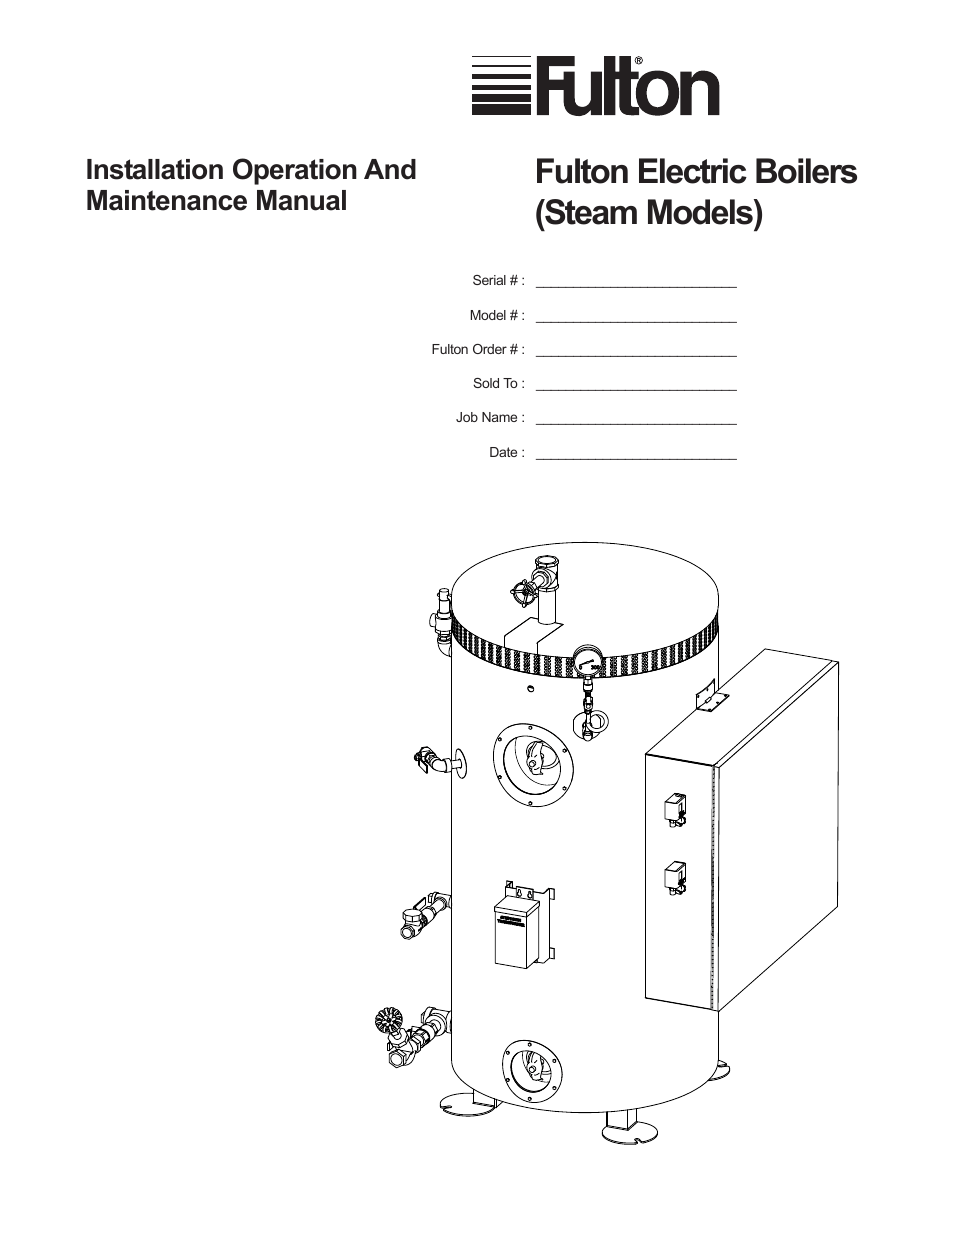 fulton electric fb l steam boiler page1?resize\=665%2C861 wiring diagram 700 434 gas valve gas valve troubleshooting  at gsmx.co